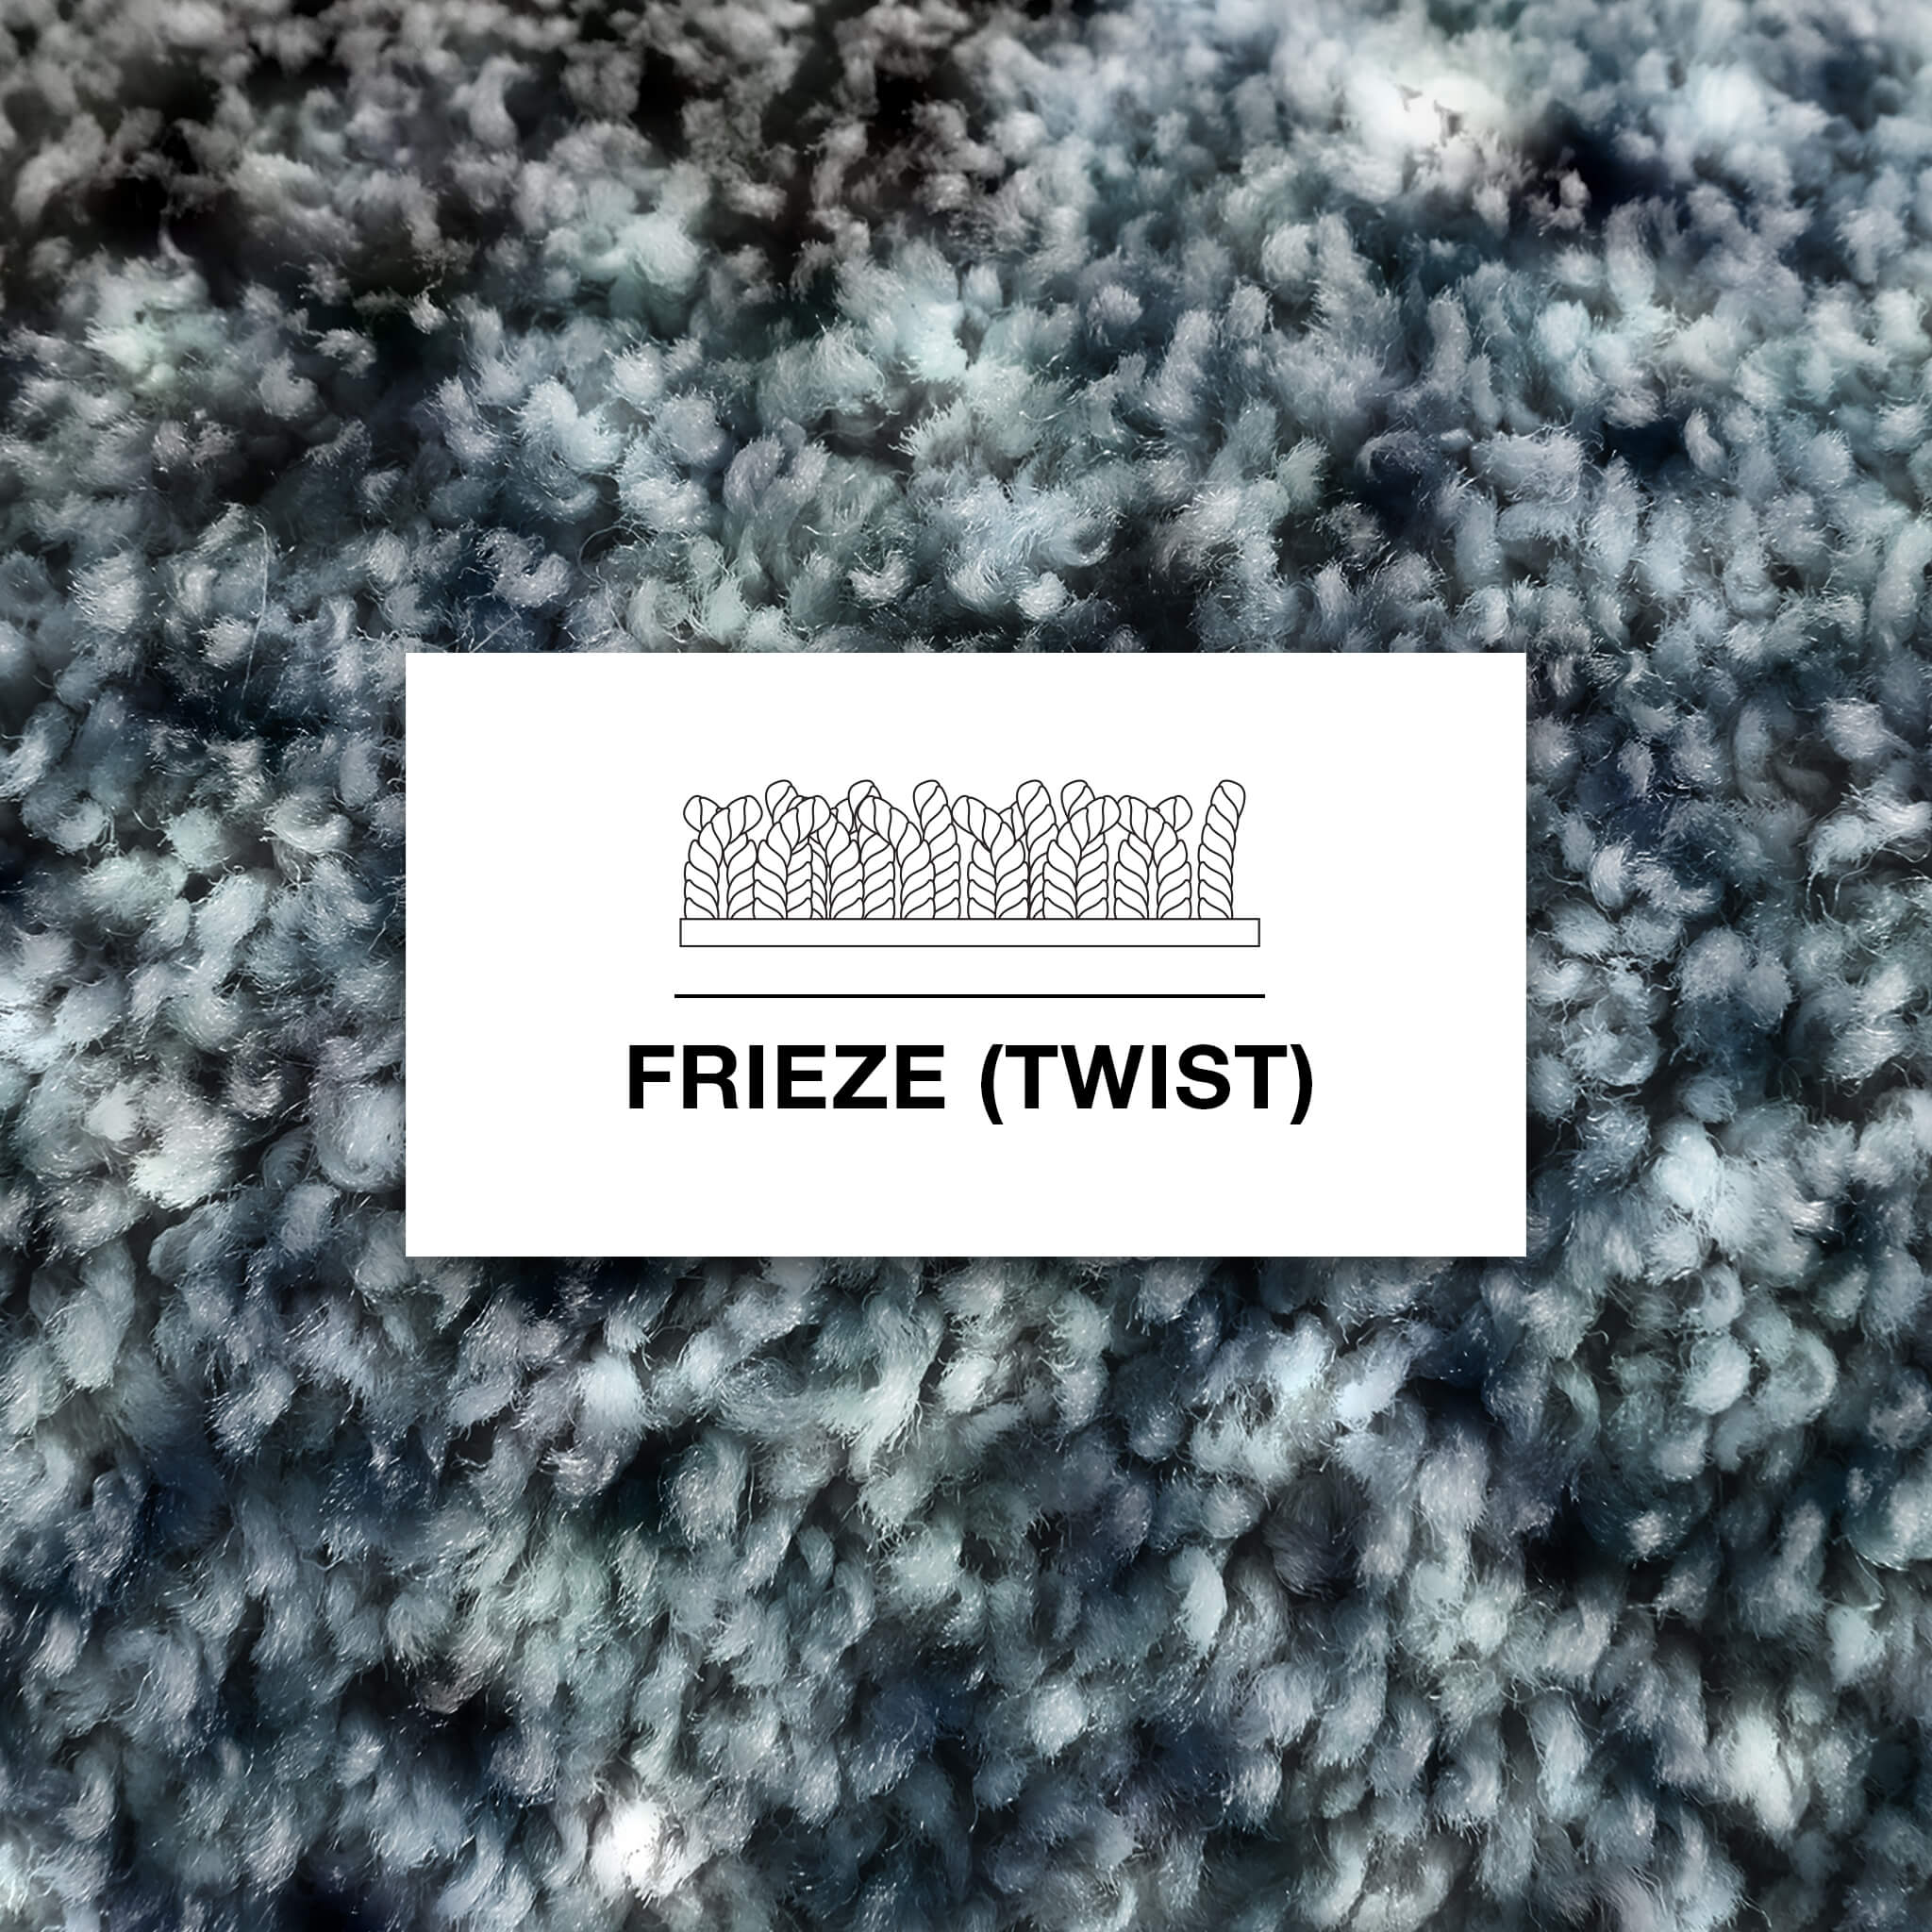 Frieze Twist, Frieze, Twist, Fiber, Rug, Fiber type, Type, carpet